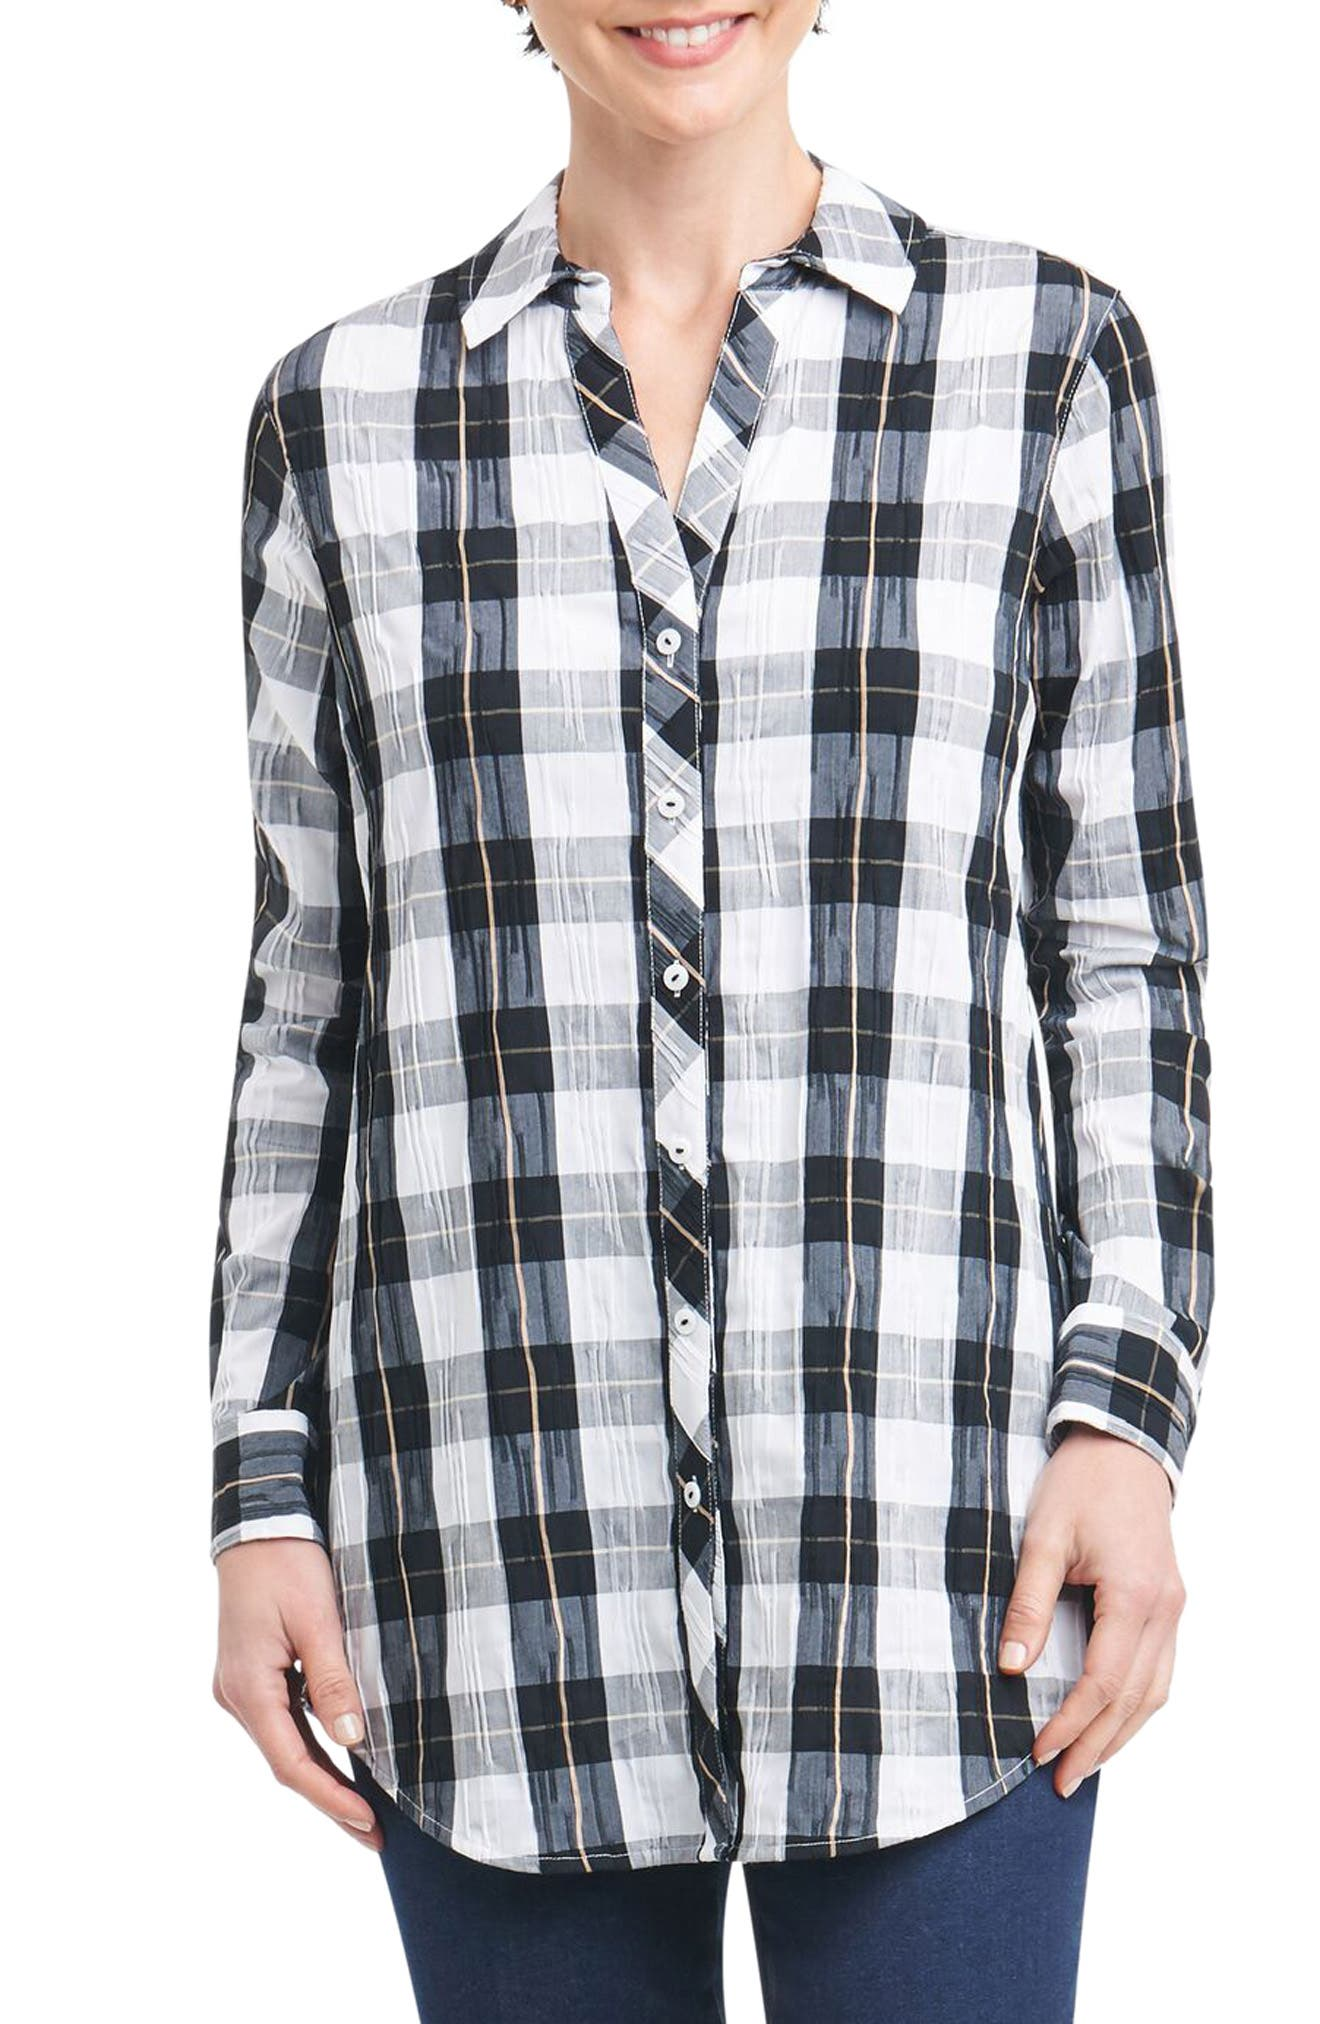 Fay Crinkle Plaid Stretch Cotton Blend Tunic Shirt,                         Main,                         color, Black